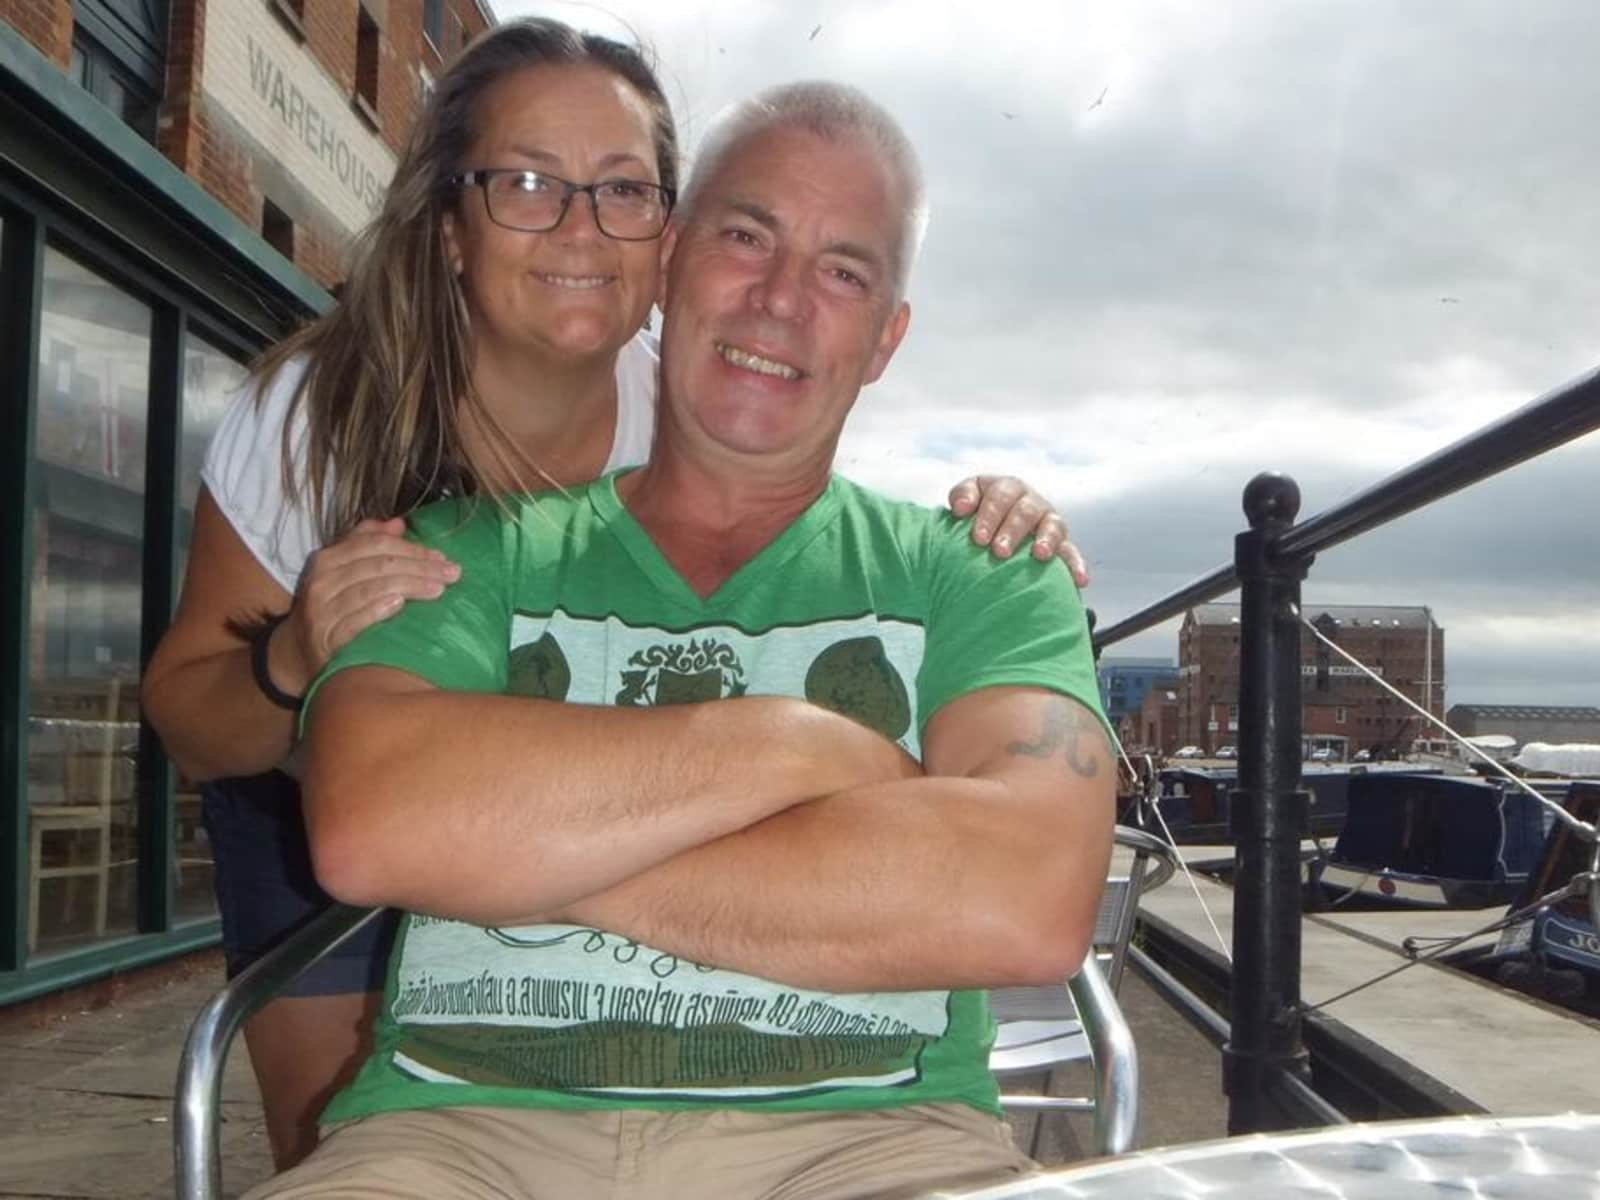 Carole & Paul from Gloucester, United Kingdom